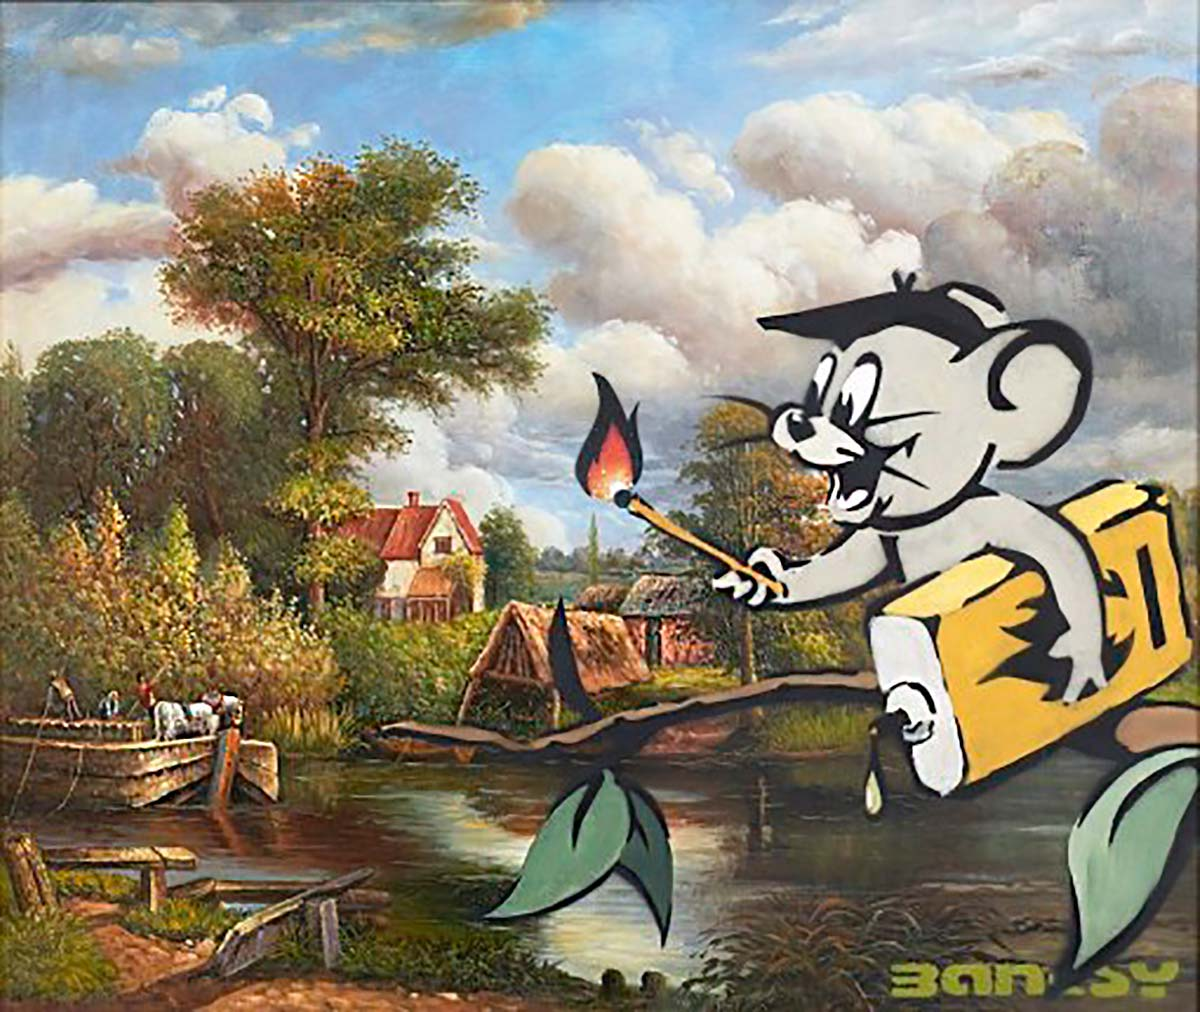 """Beanfield"" is one of Banksy's largest work, a classical pastoral village scene overlaid with a cartoon mouse about to set the world on fire."